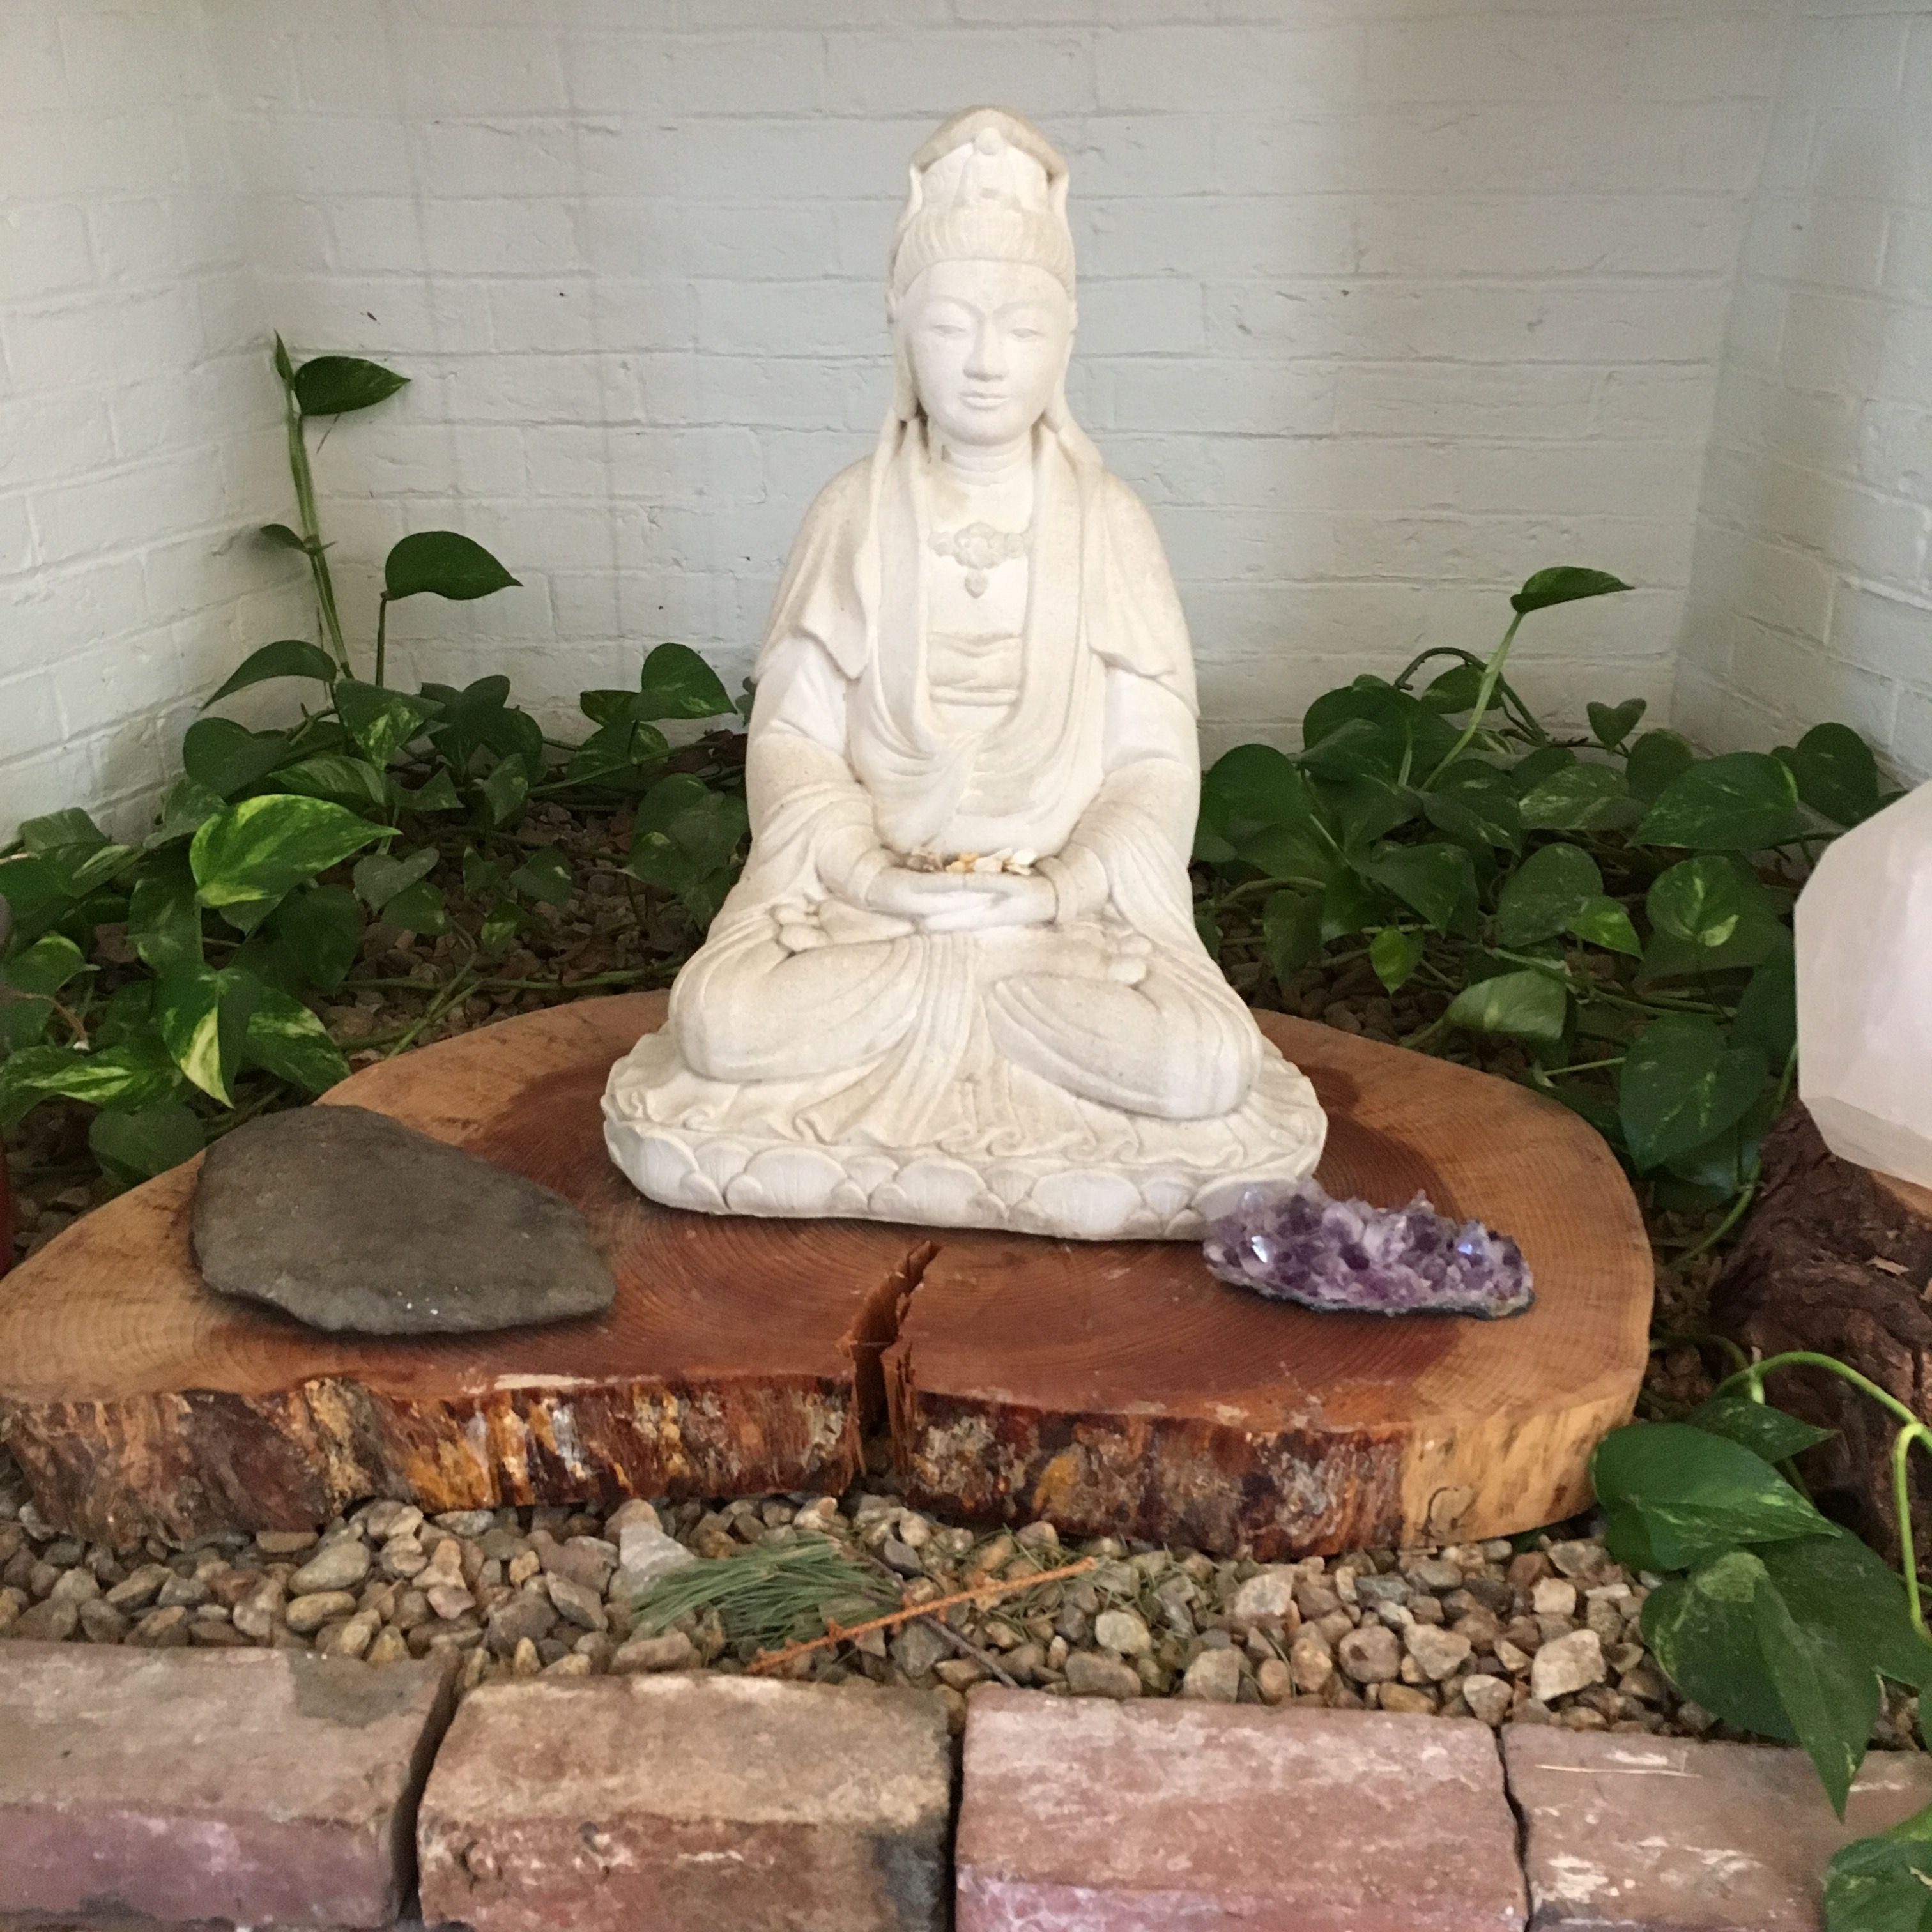 MBSR MindfulnessBased Stress Reduction I am a Center for